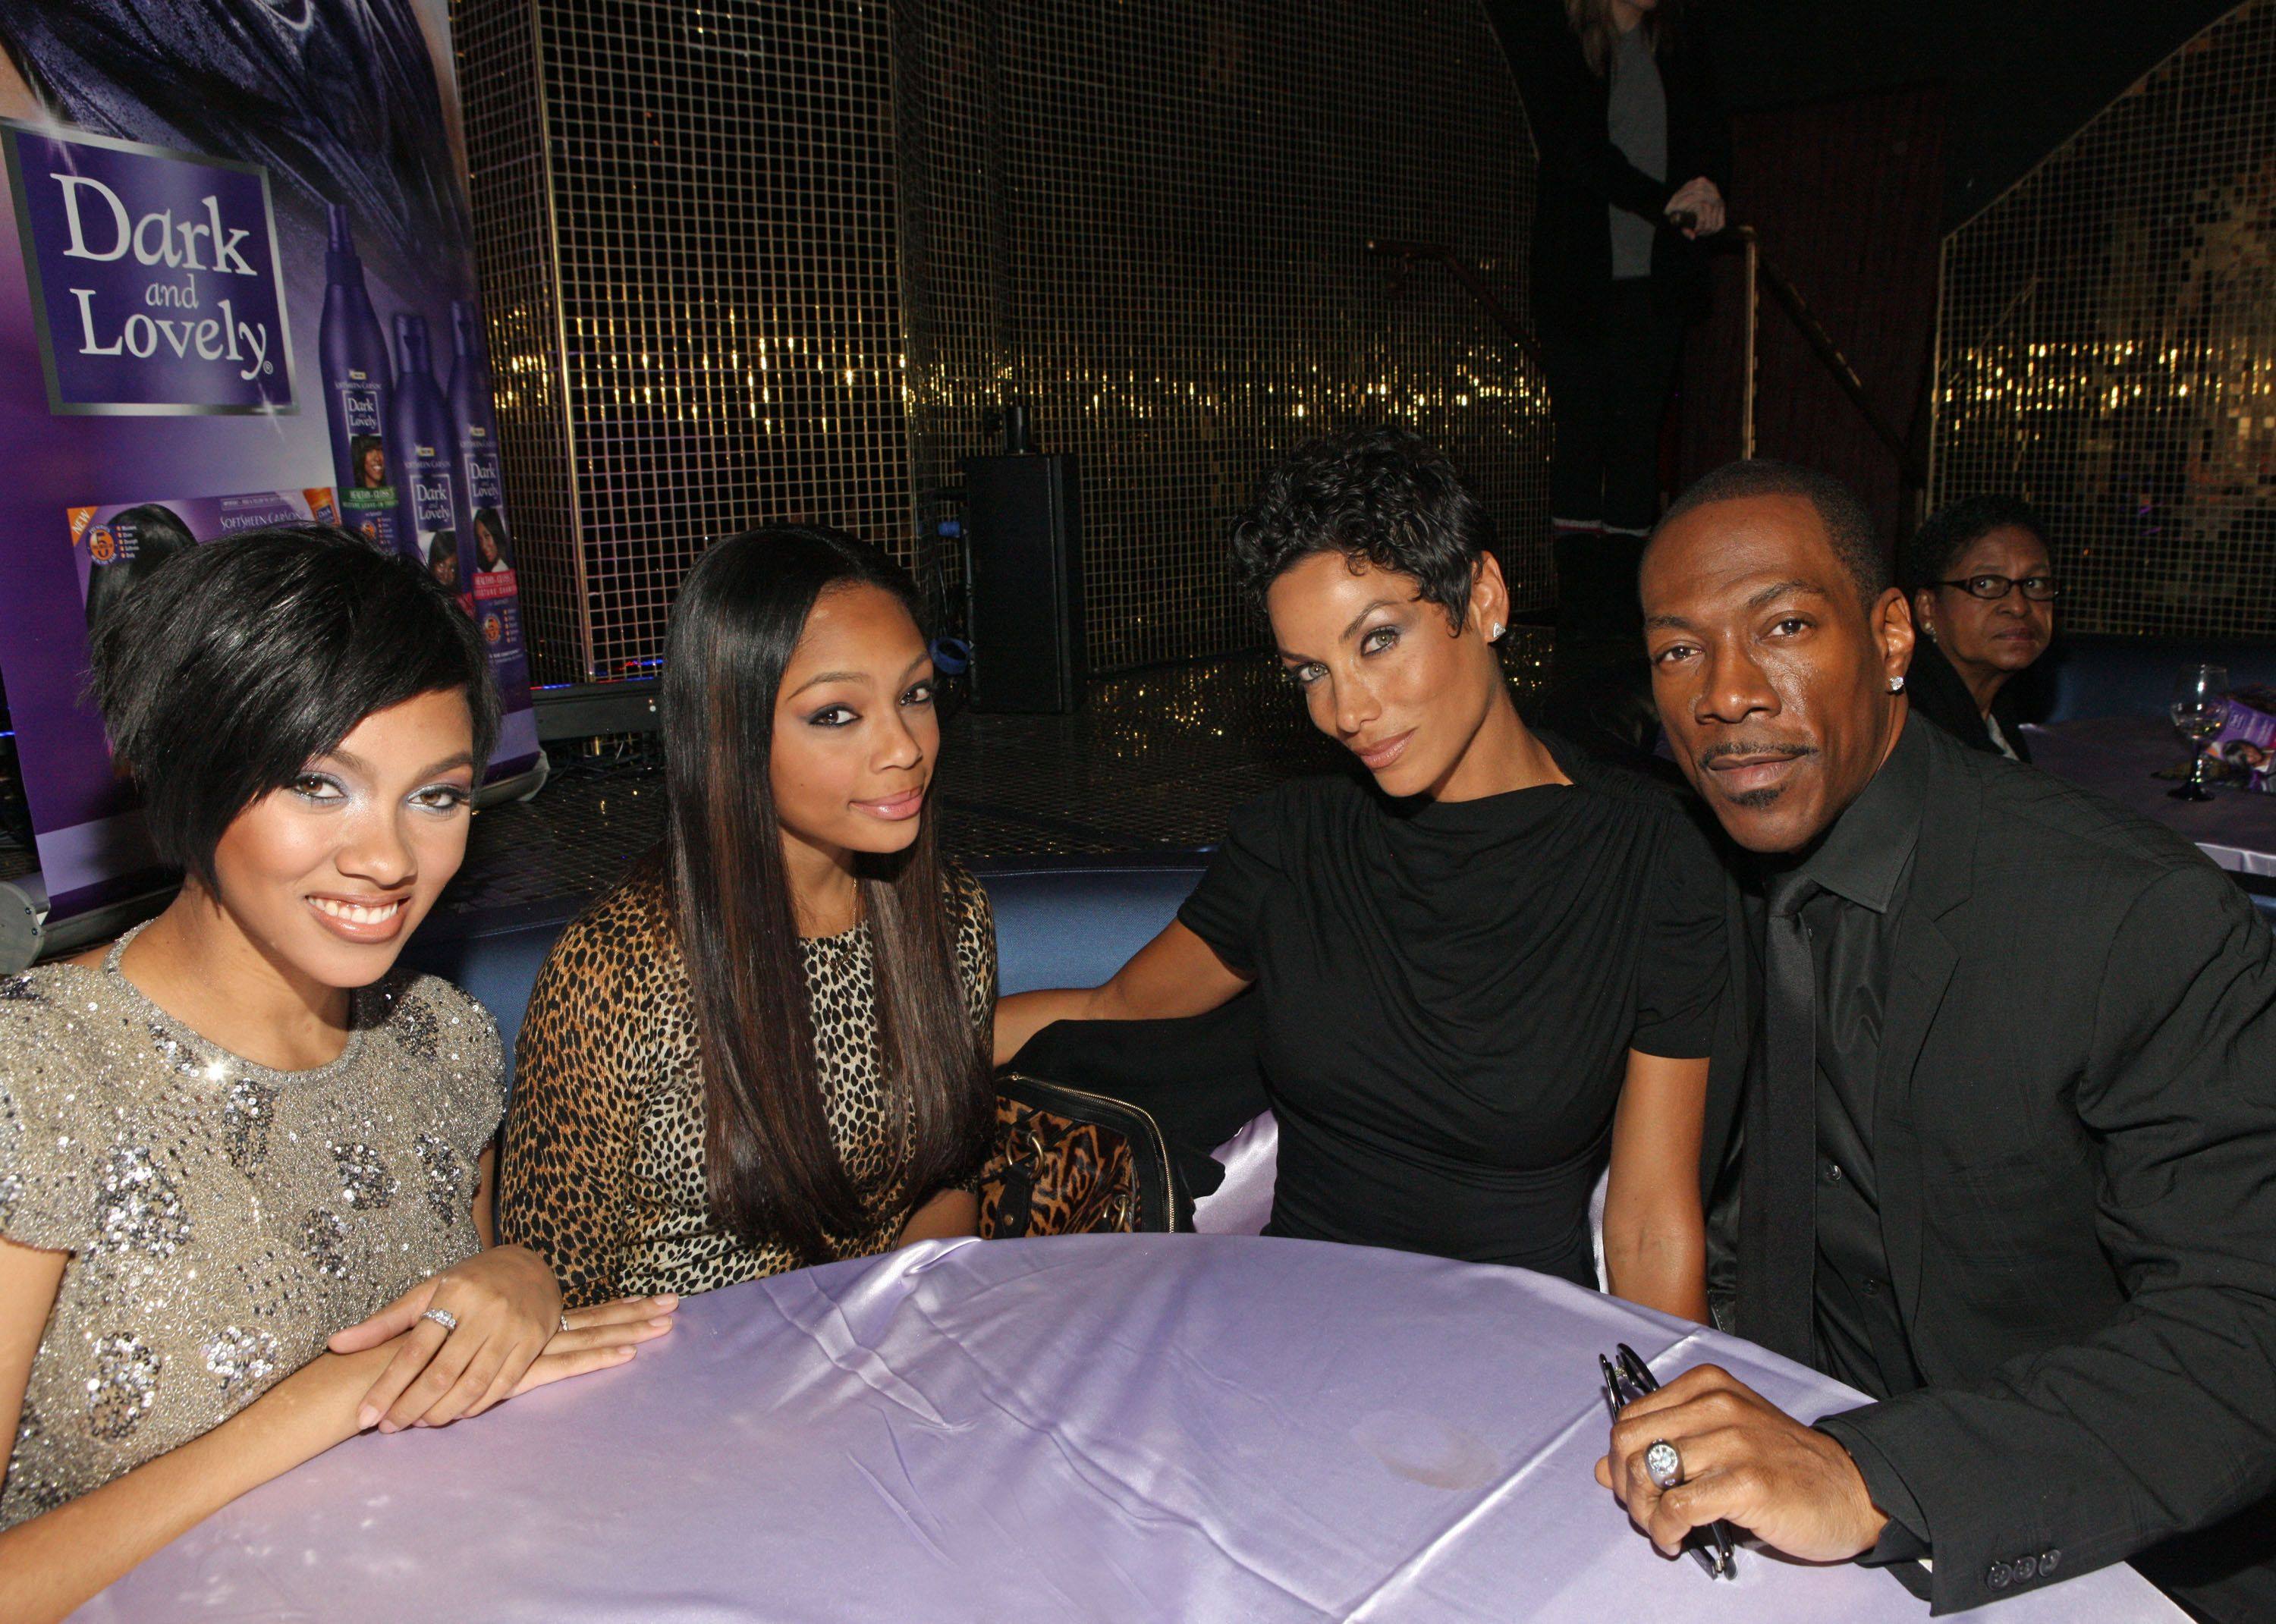 Bria, Shayne, Nicole Murphy, and Eddie Murphy at the SoftSheen-Carson Dark and Lovely event announcing Bria Murphy as New Global Brand Ambassador in 2011 in New York | Source: Getty Images